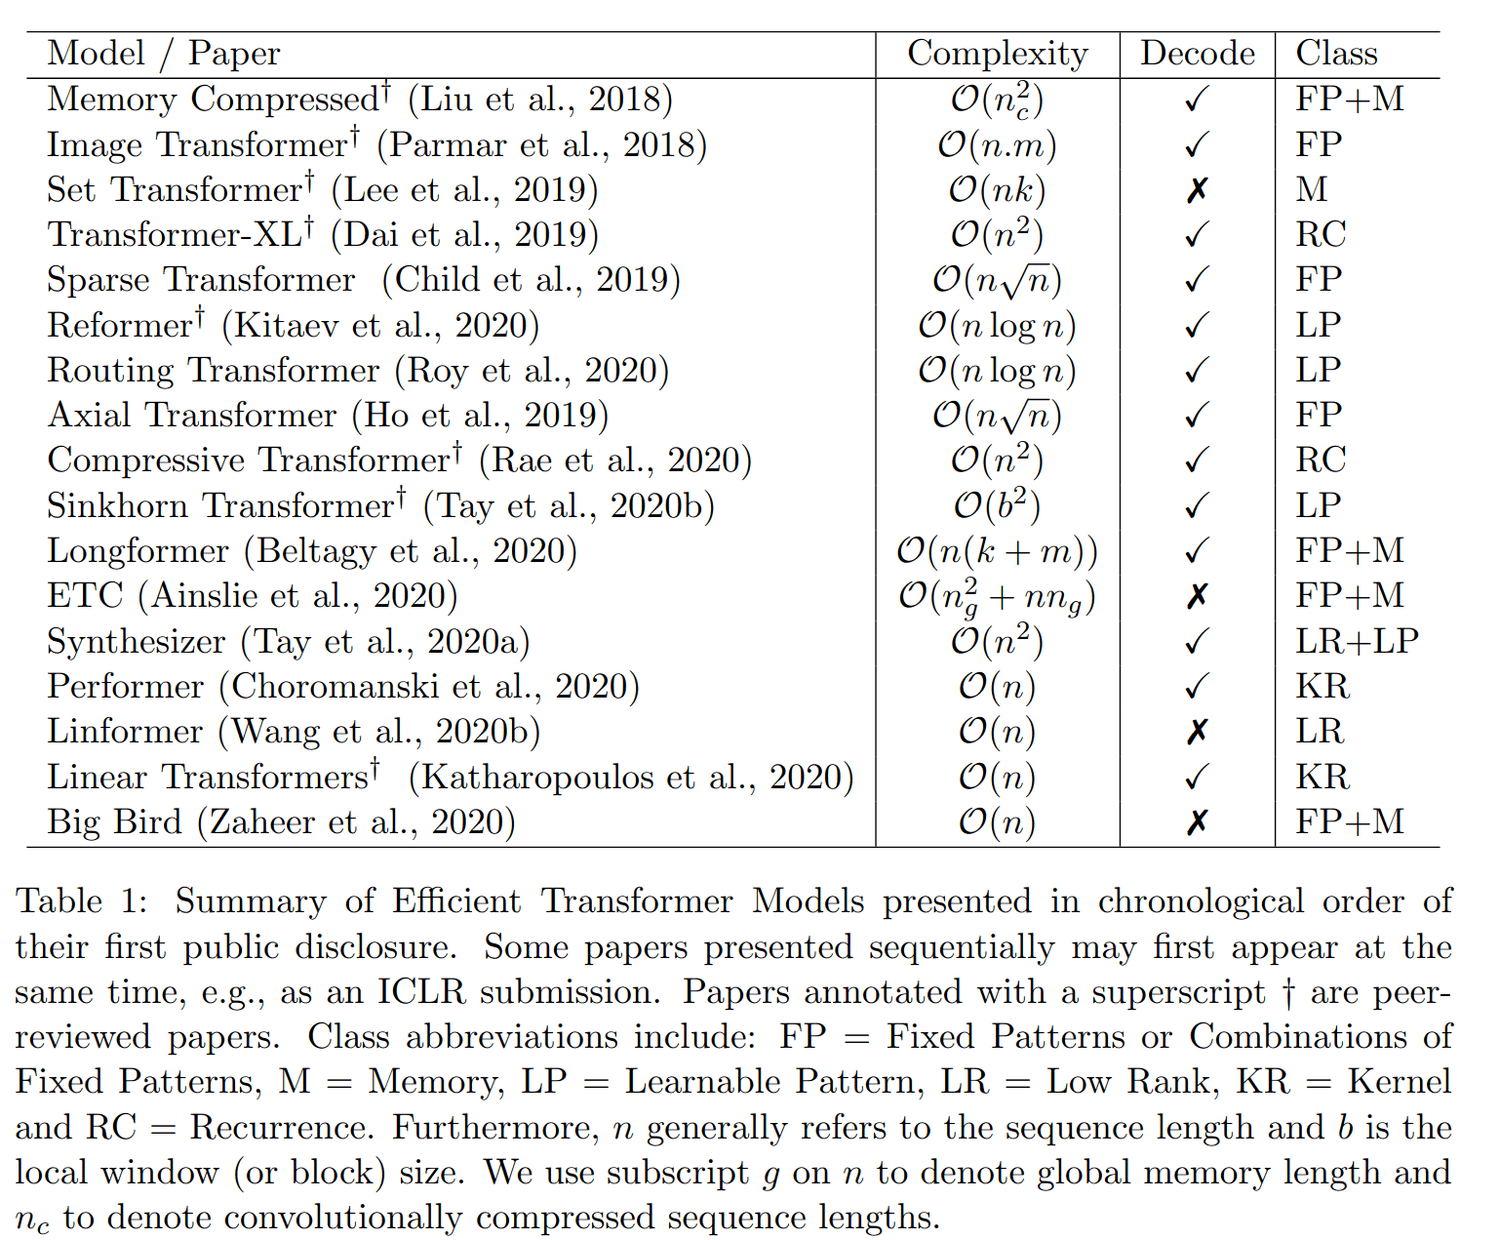 """Table 1: Summary of Efficient Transformer Models presented in chronological order of their first public disclosure"" (Tay et al 2020)"